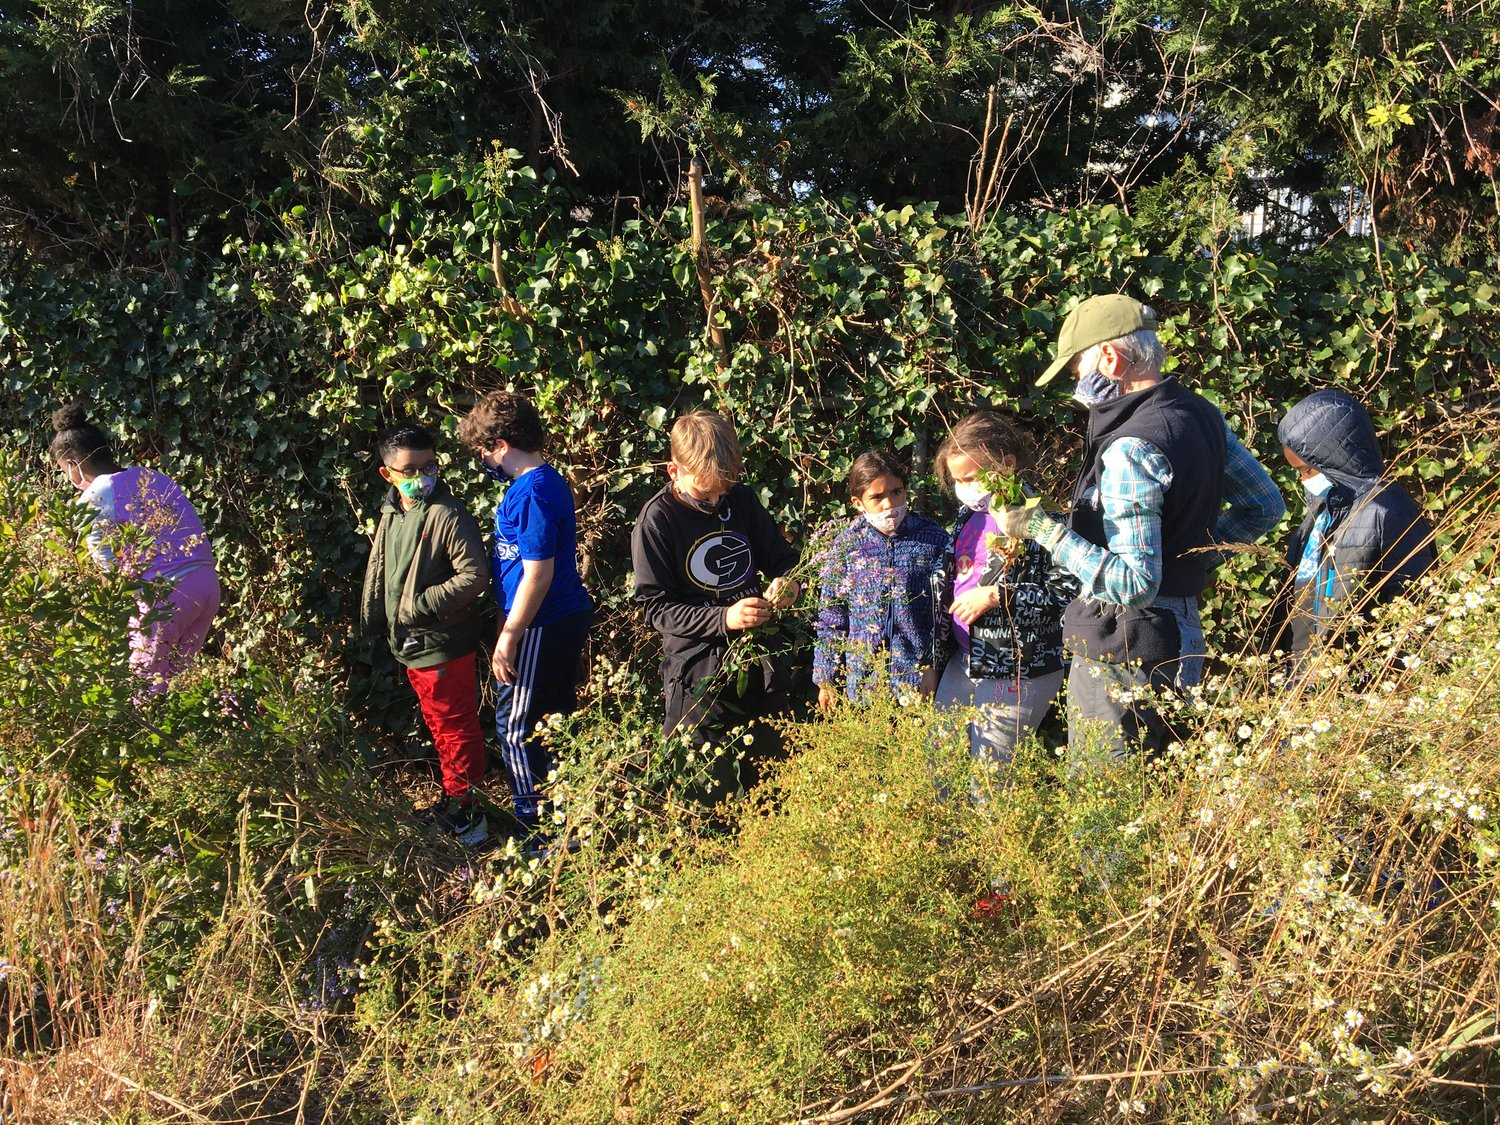 Meadow Elementary School students tended to their school's garden as part of the science curriculum alongside botanist and designer Sue Avery last Friday.